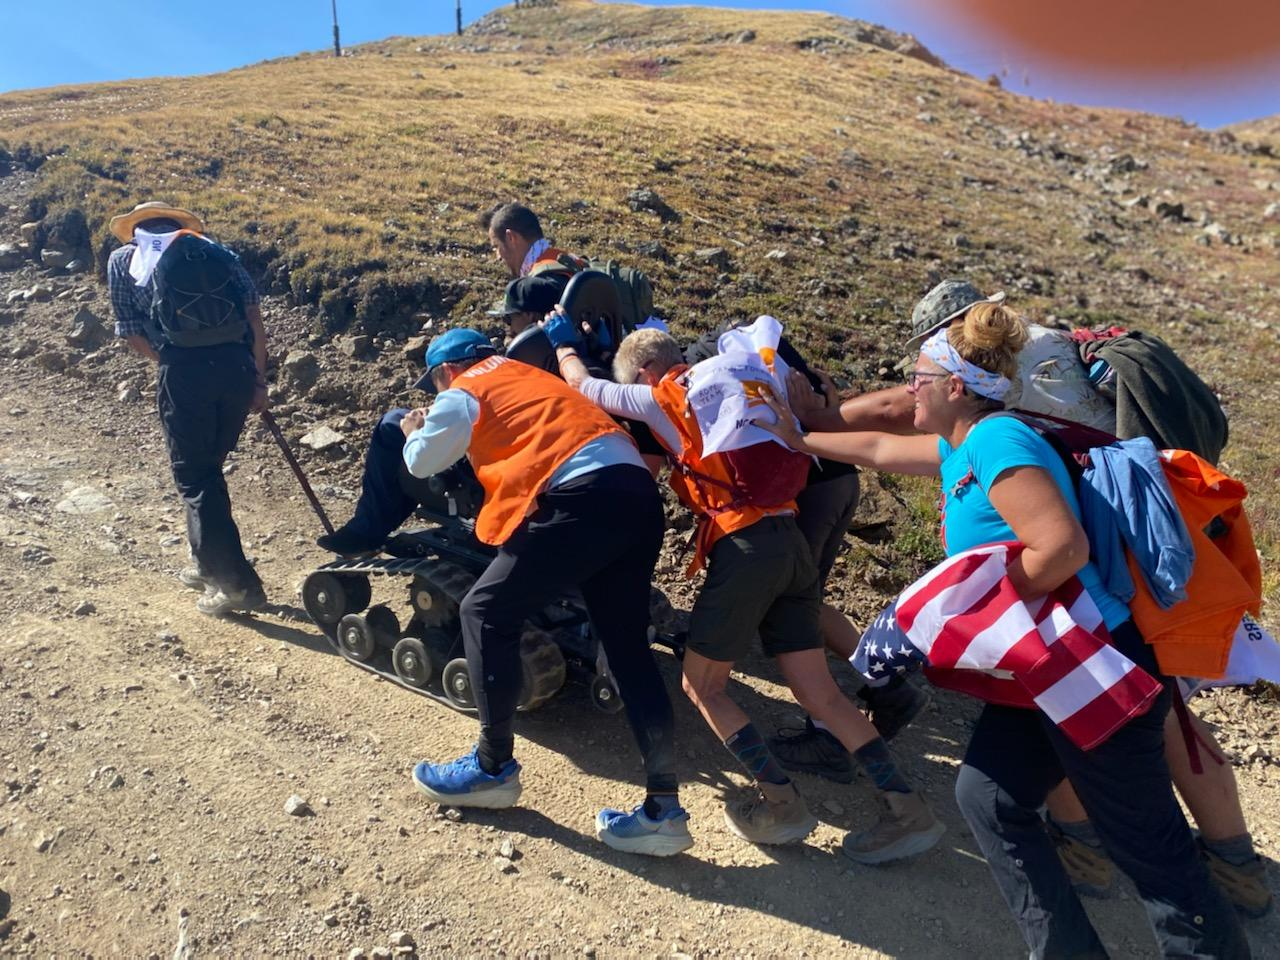 Hikers push a wheel chair up hill